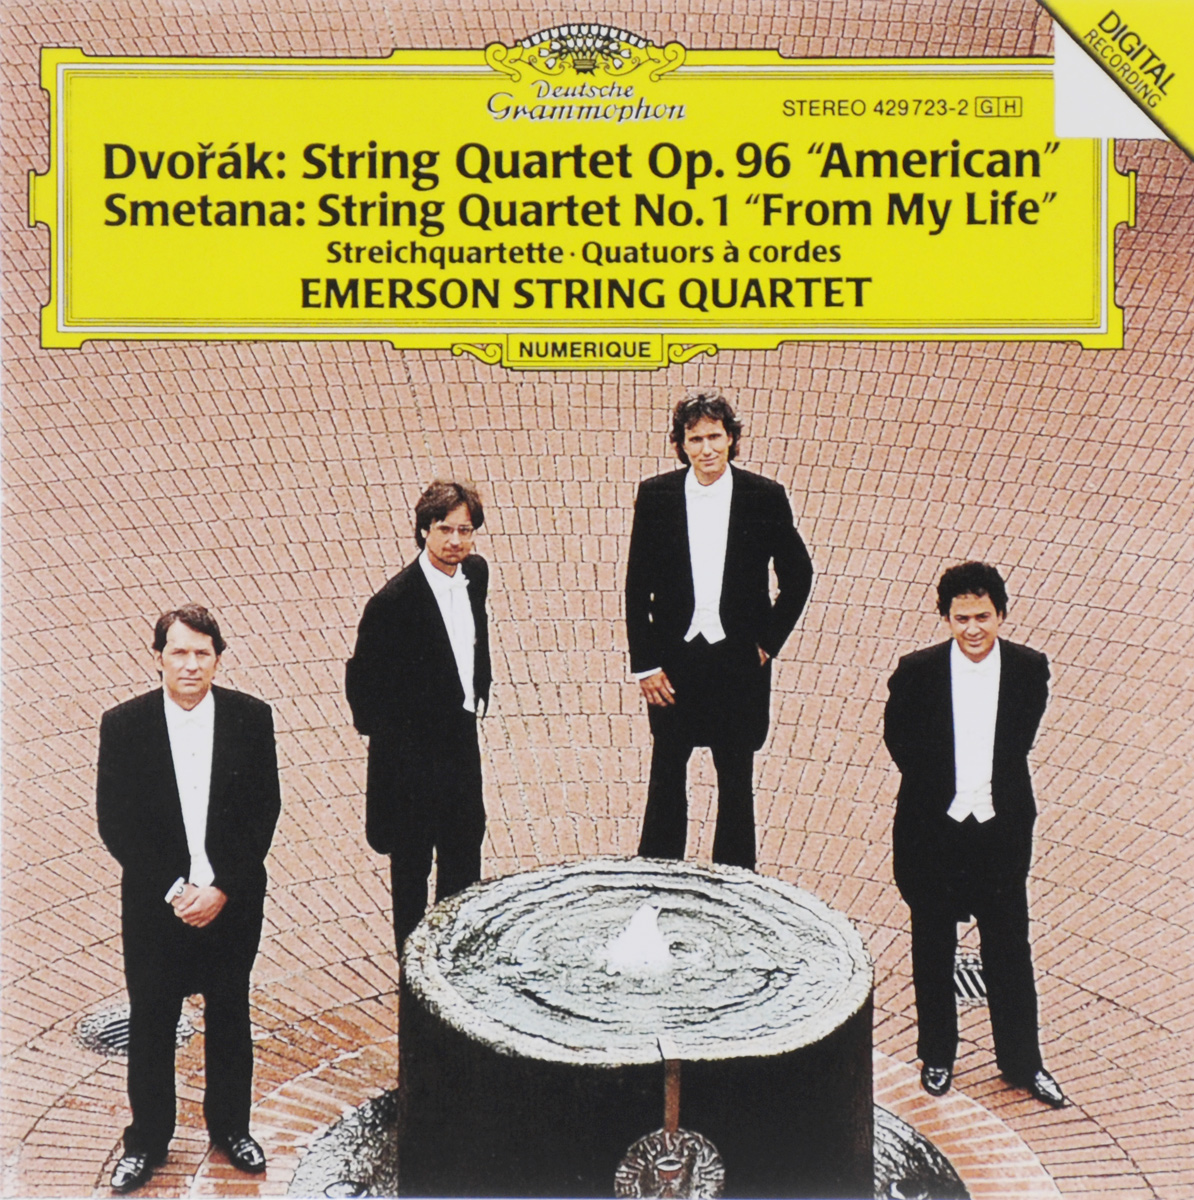 Emerson String Quartet Emerson String Quartet. String Quartet Op. 96 American / String Quartet No. 1 From My Life калькулятор настольный casio ms 20uc rg s ec 12 разрядный оранжевый